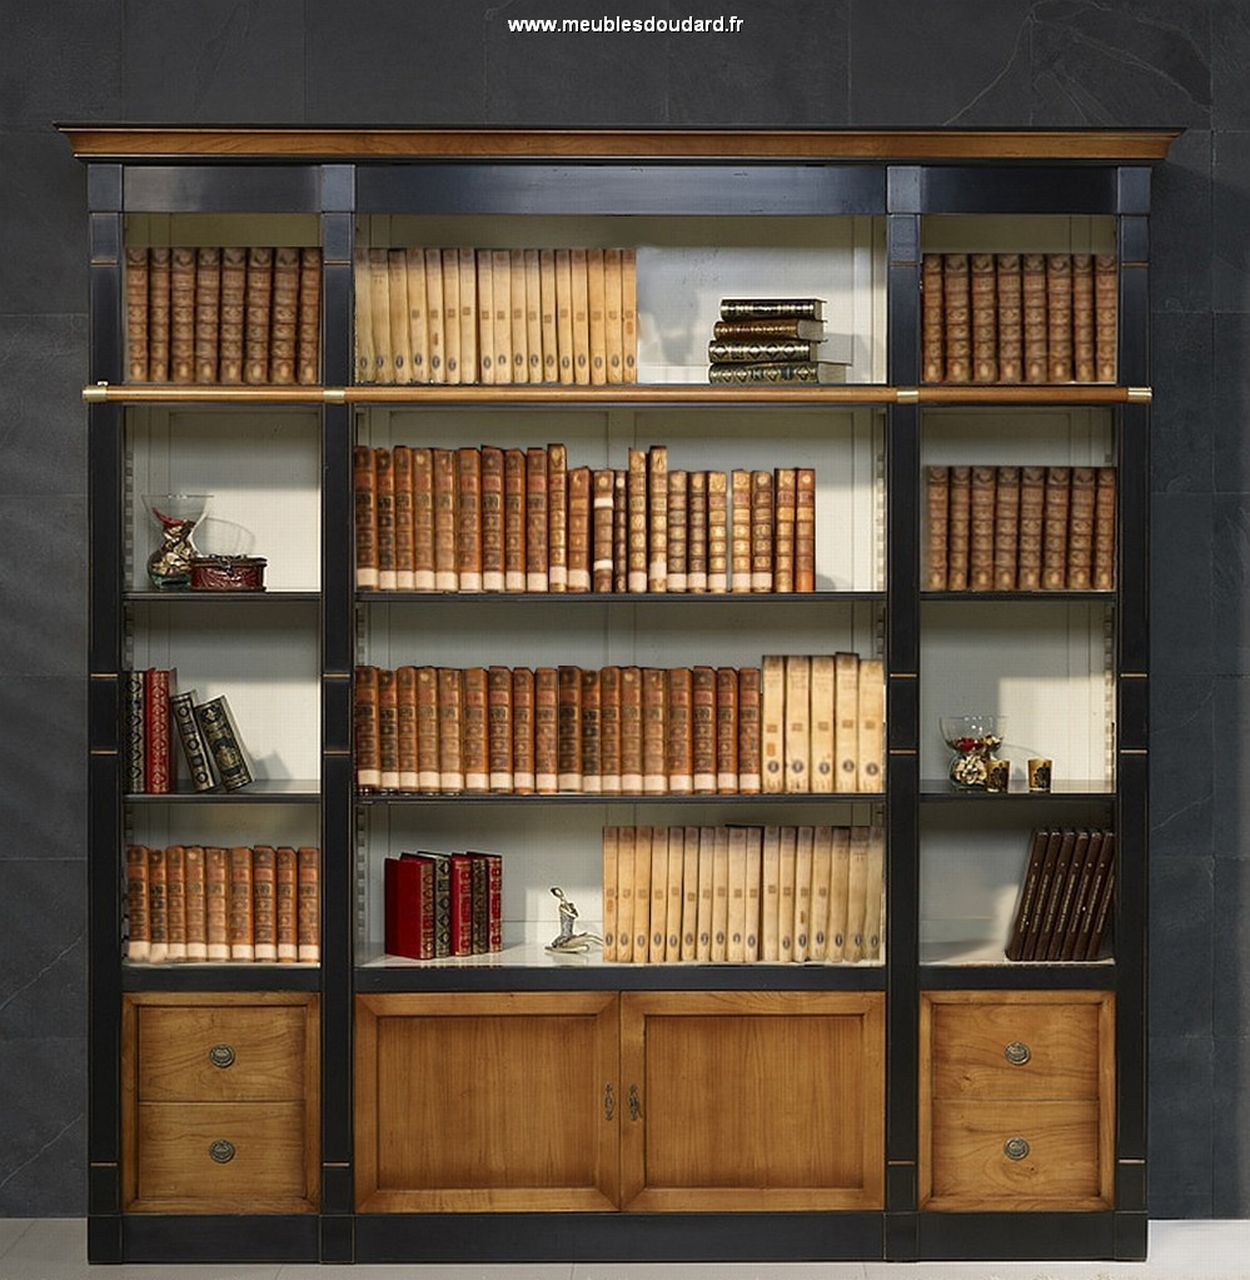 Meuble Biblioth Que Biblioth Que Merisier Biblioth Que  # Meubles Bas Bibliotheque Salon